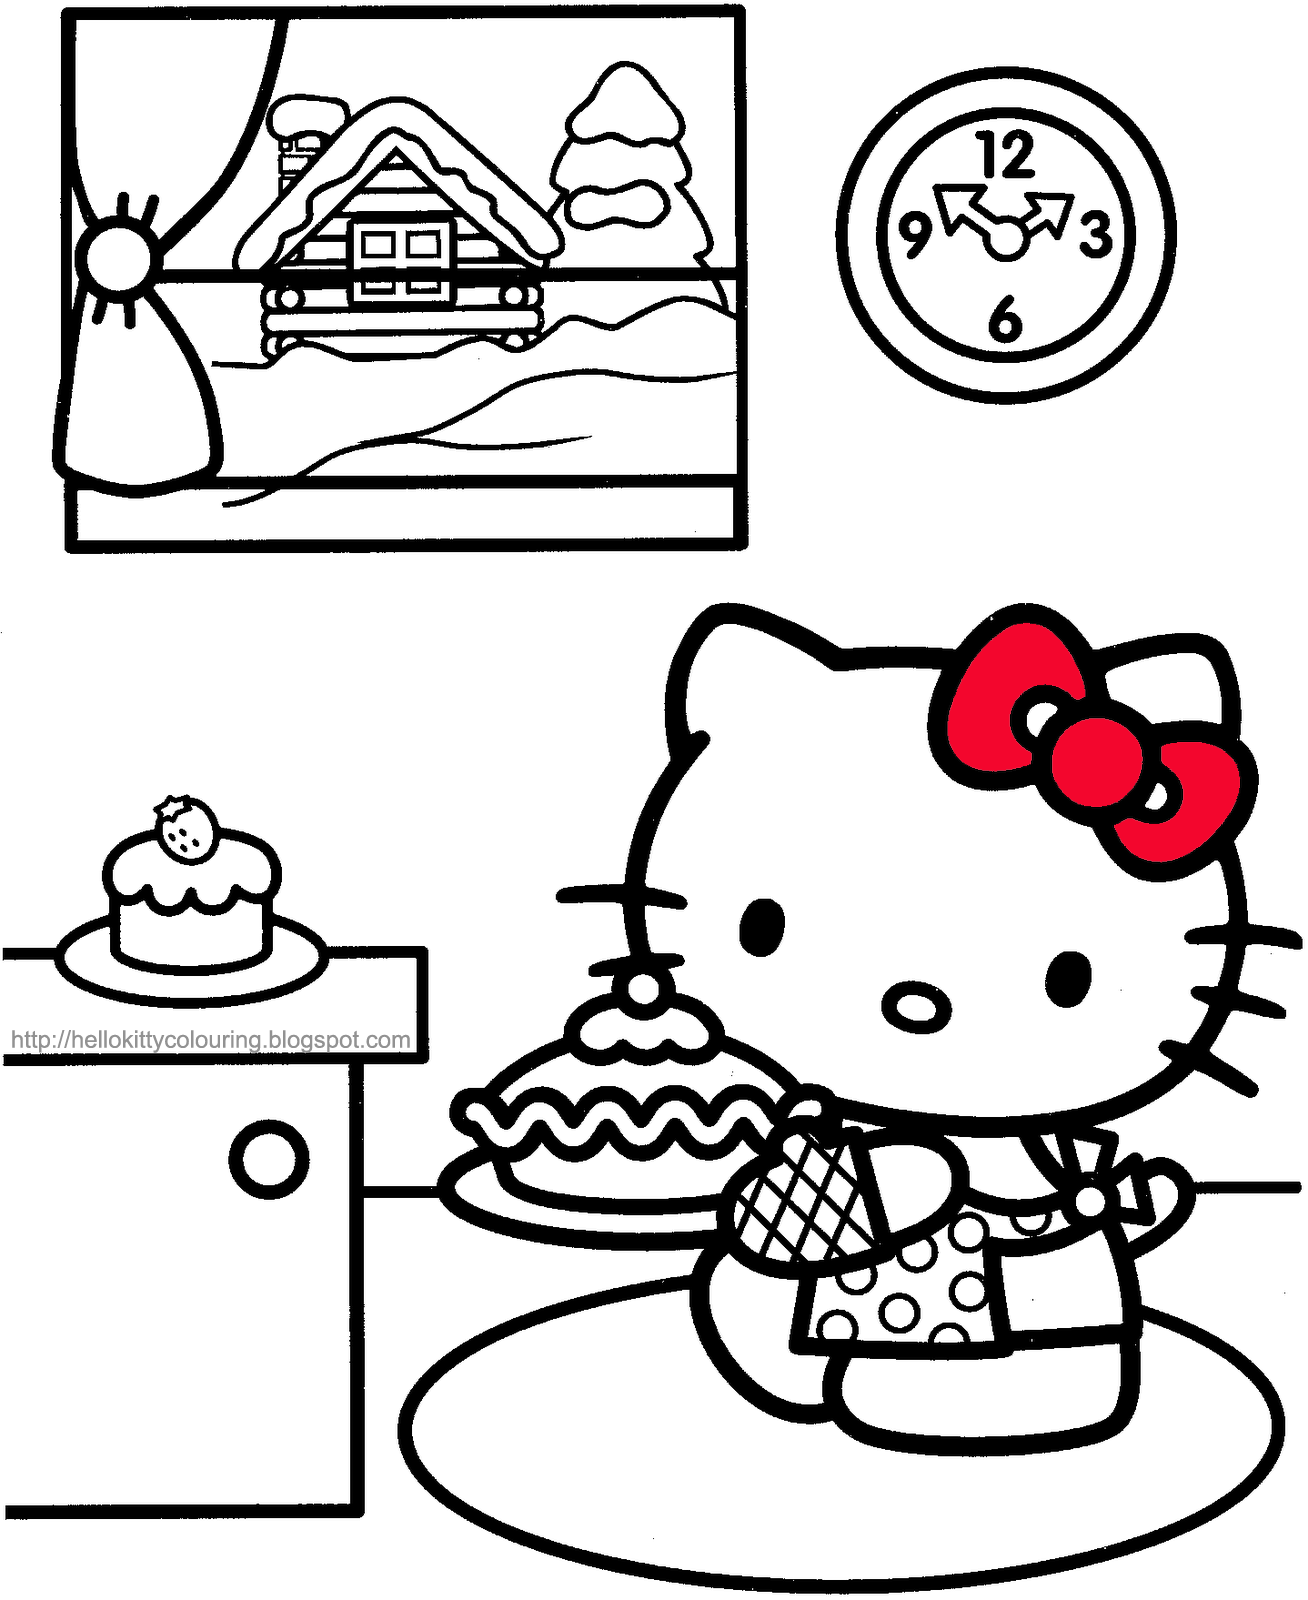 Hello Kitty Cupcake Coloring Pages : Hello kitty cupcake coloring pages az